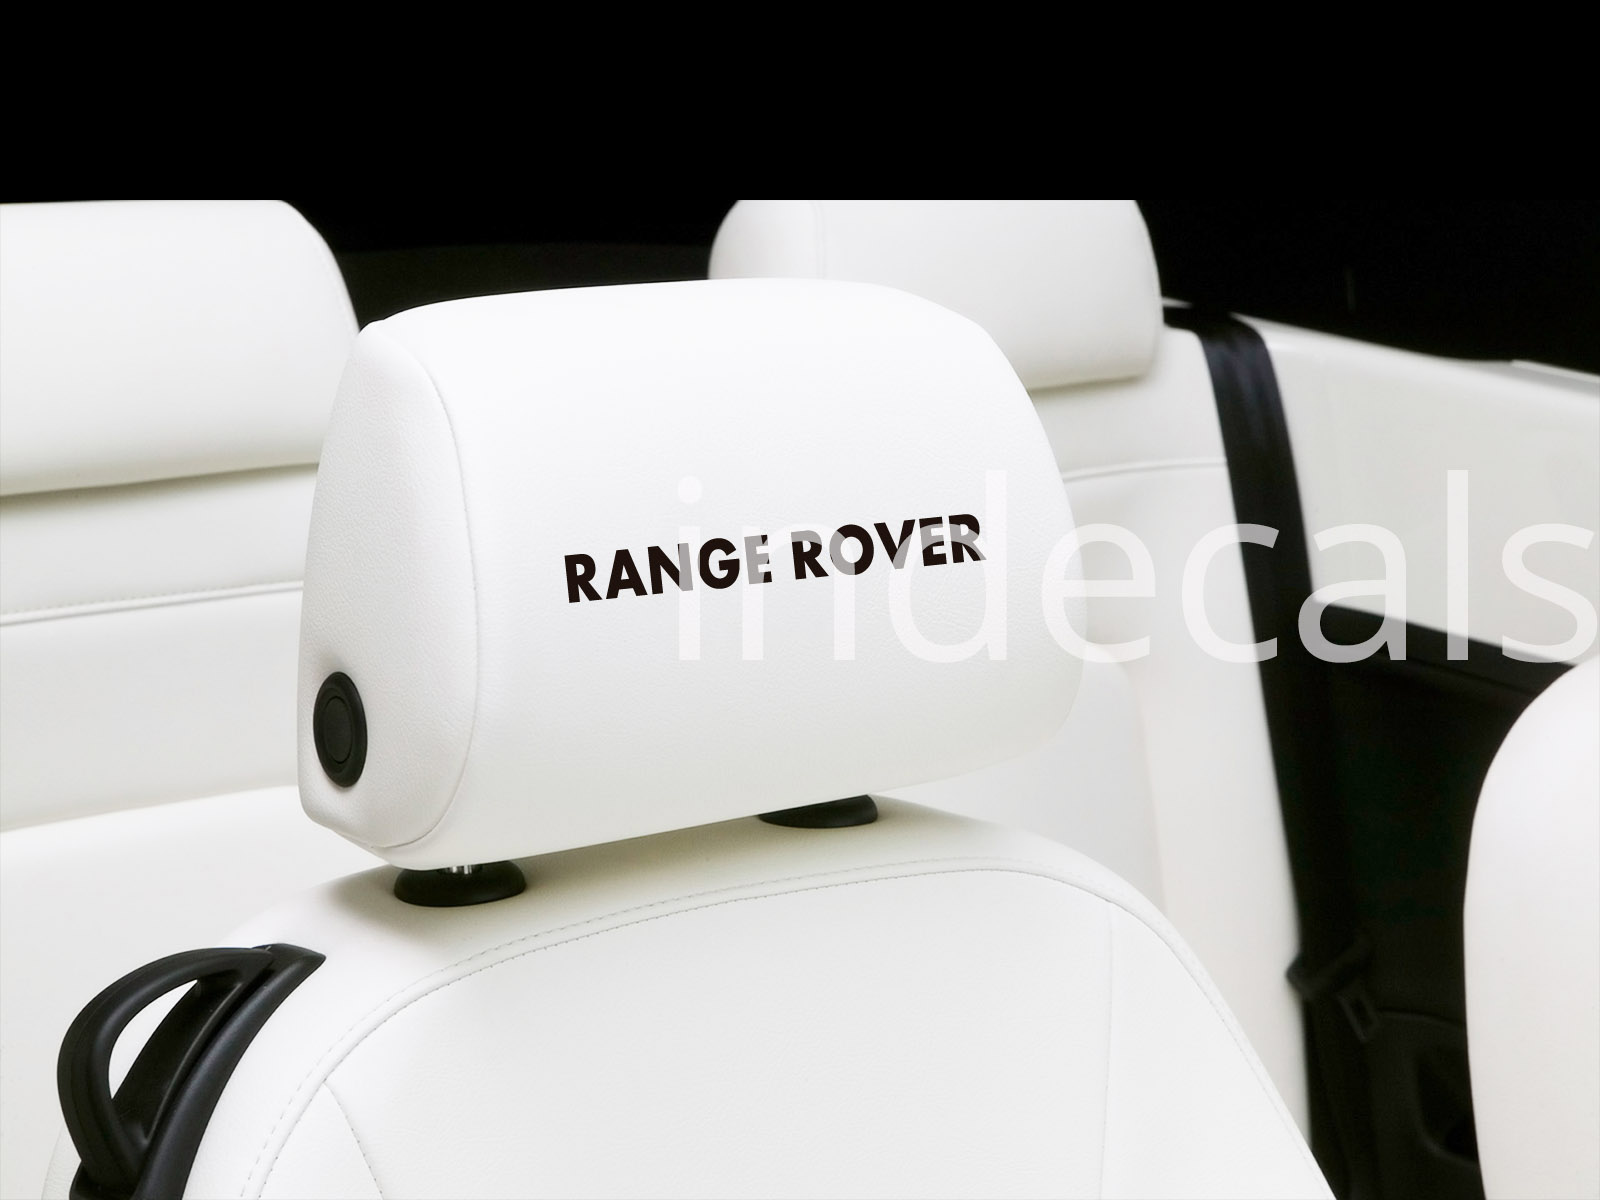 6 x Range Rover Stickers for Headrests - Black